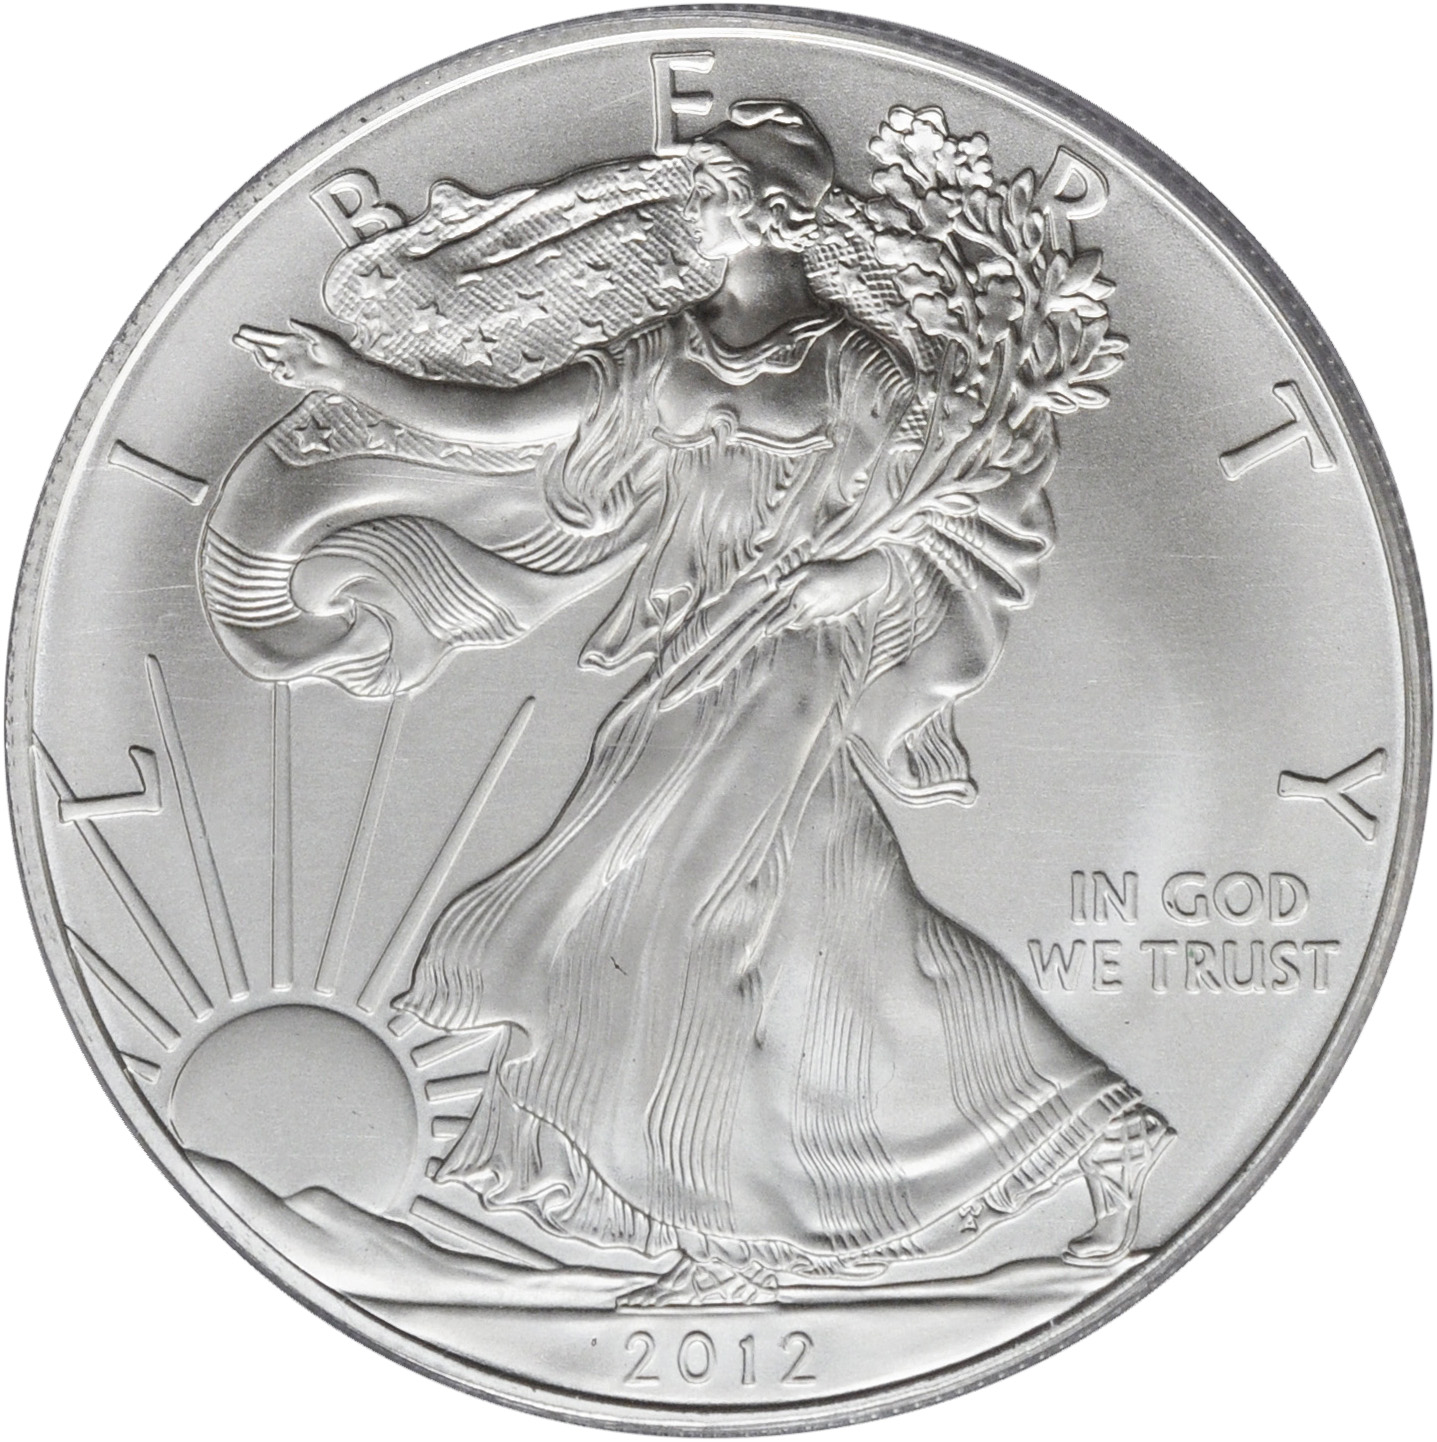 Value Of 2012 $1 Silver Coin